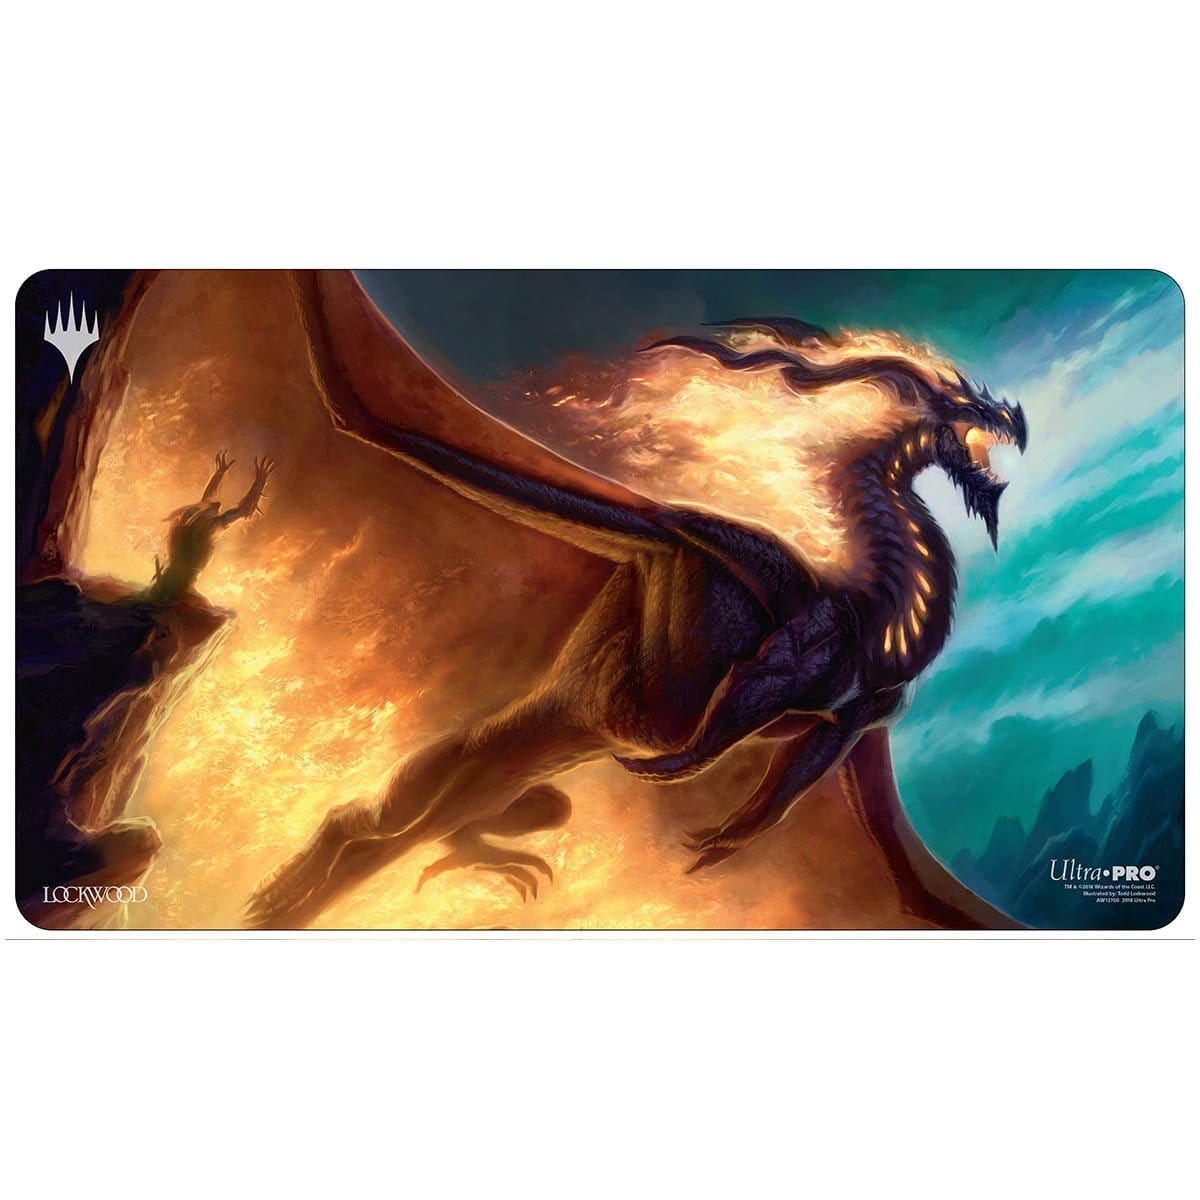 Prossh, Skyraider of Kher Playmat - Playmat - Original Magic Art - Accessories for Magic the Gathering and other card games